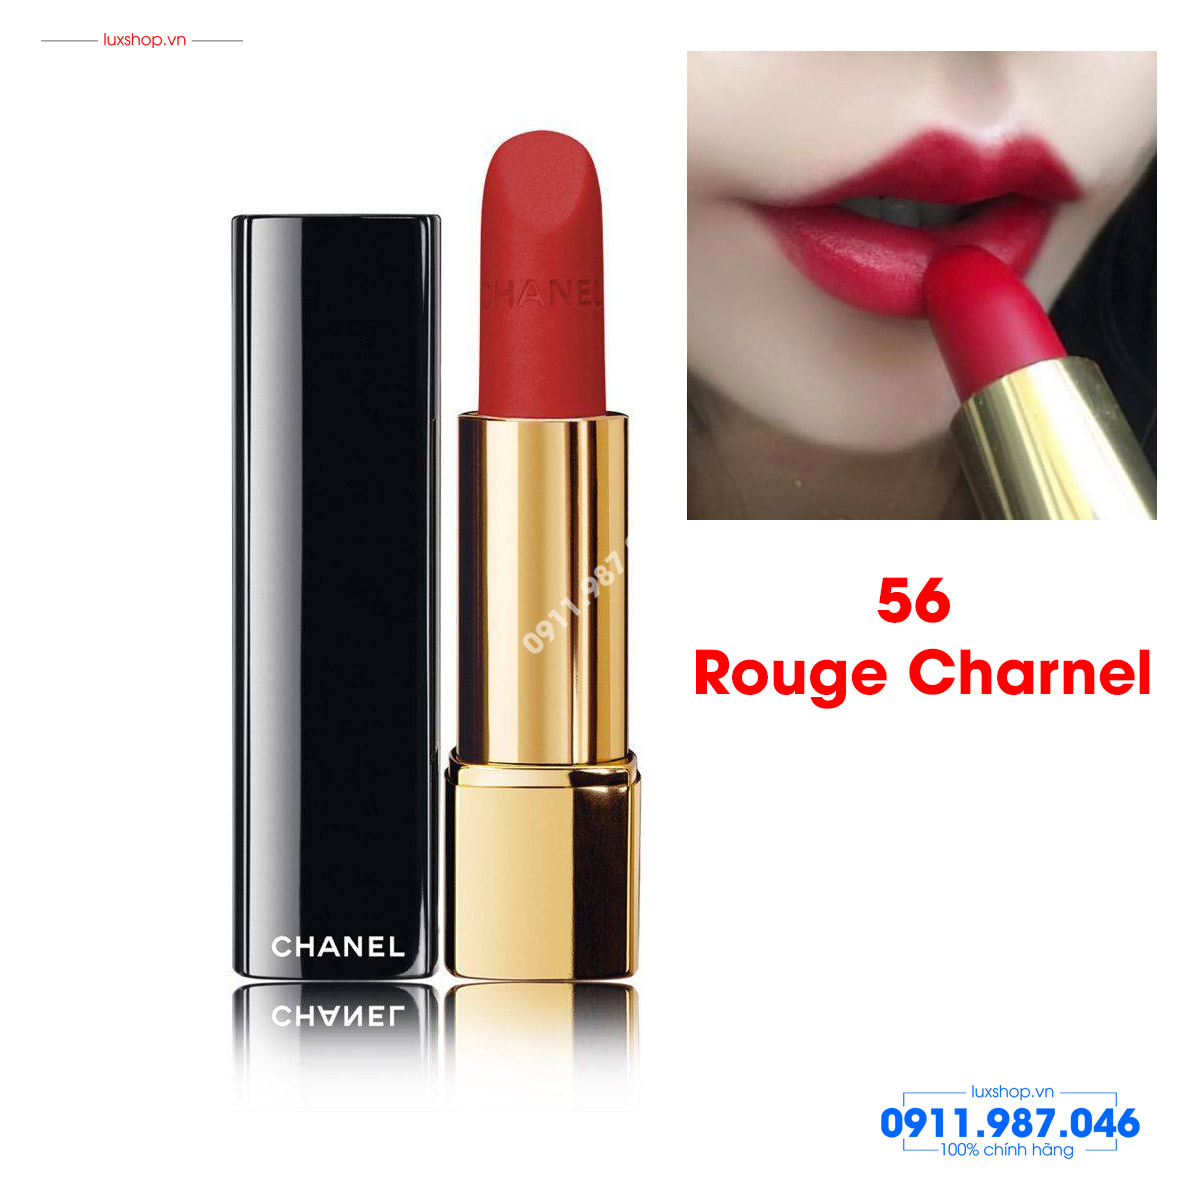 son-moi-chanel-56-rouge-charnel-mau-do-tuoi-chinh-hang-phap